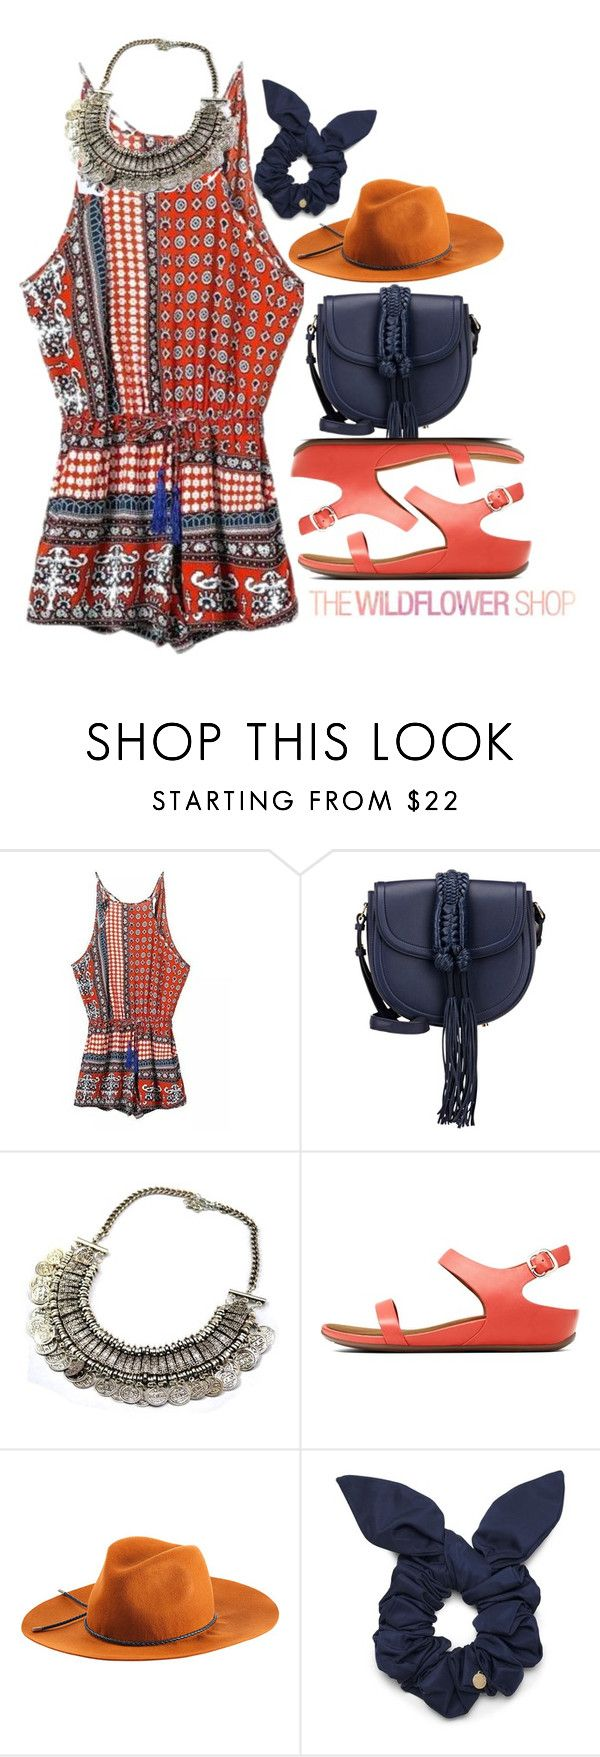 """""""TheWildflowerShop"""" by matildda ❤ liked on Polyvore featuring Altuzarra, FitFlop, Emilio Pucci and Marc by Marc Jacobs"""